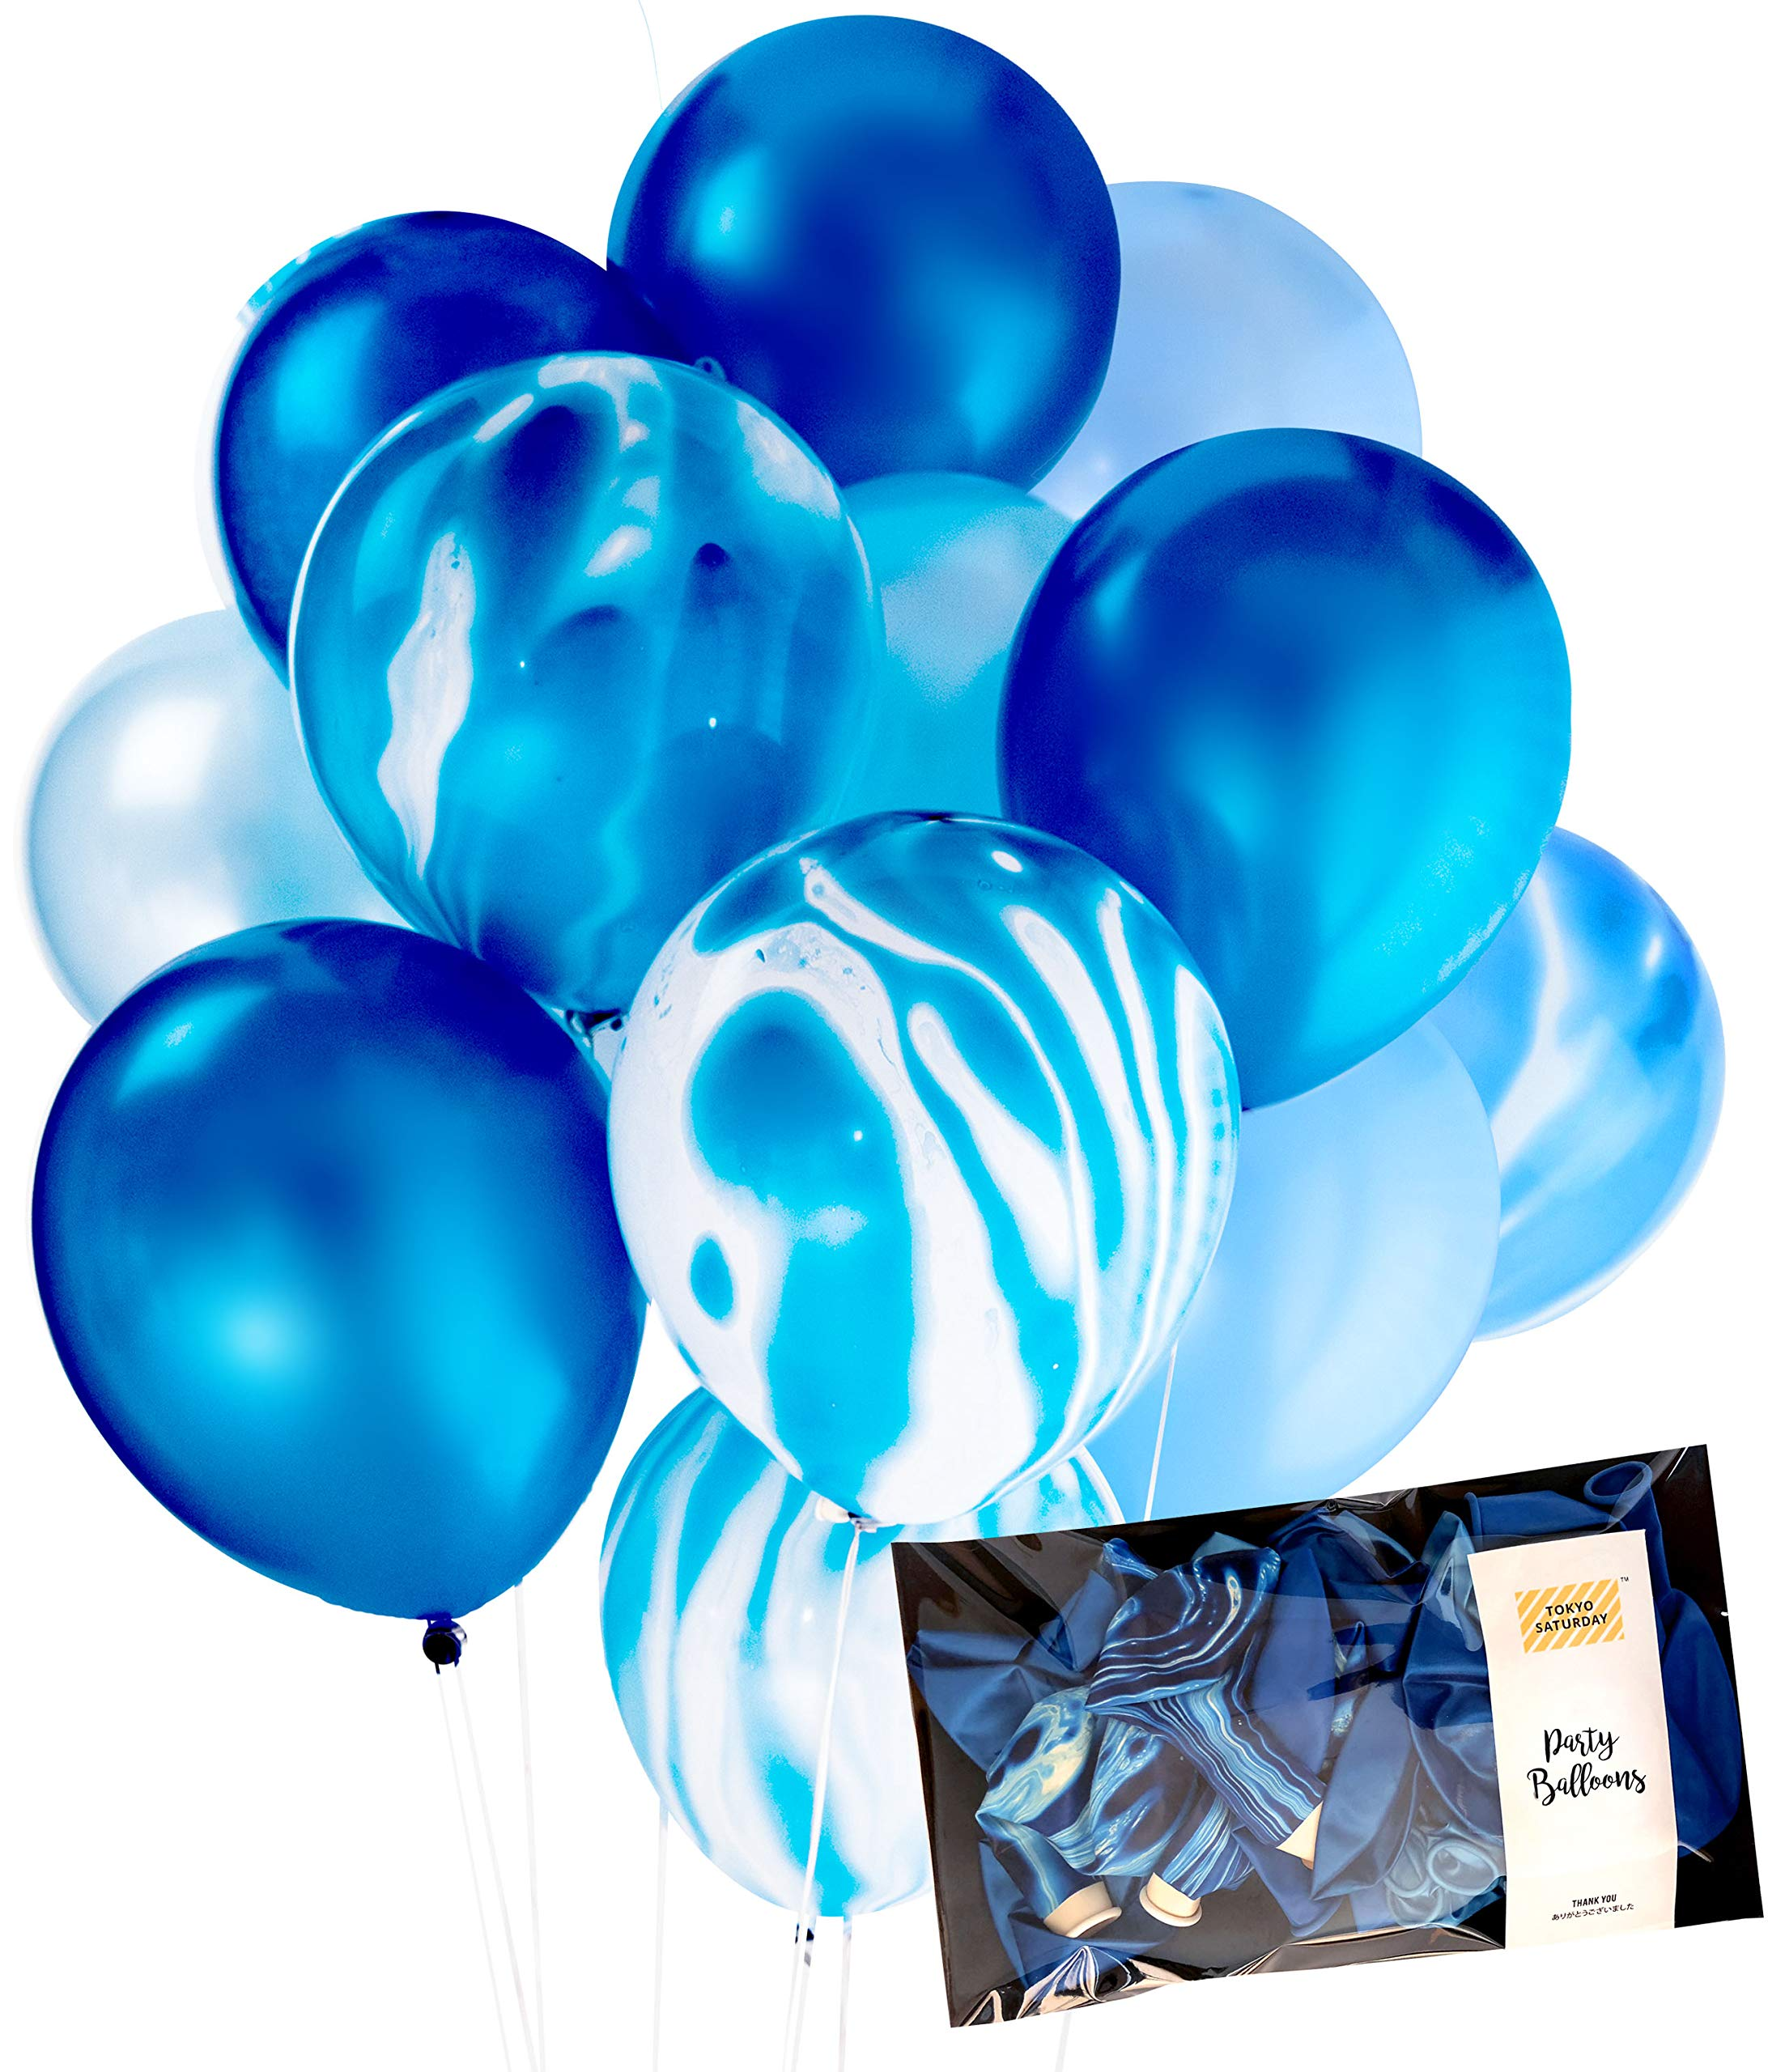 Modern Blue Agate Mix Latex Party Decoration Marble Balloon 30pc Thickened 12'' for Christmas, Wedding, Birthday Party, Photobooth, Backdrop, Balloon Arch (Blue Marble, 30)